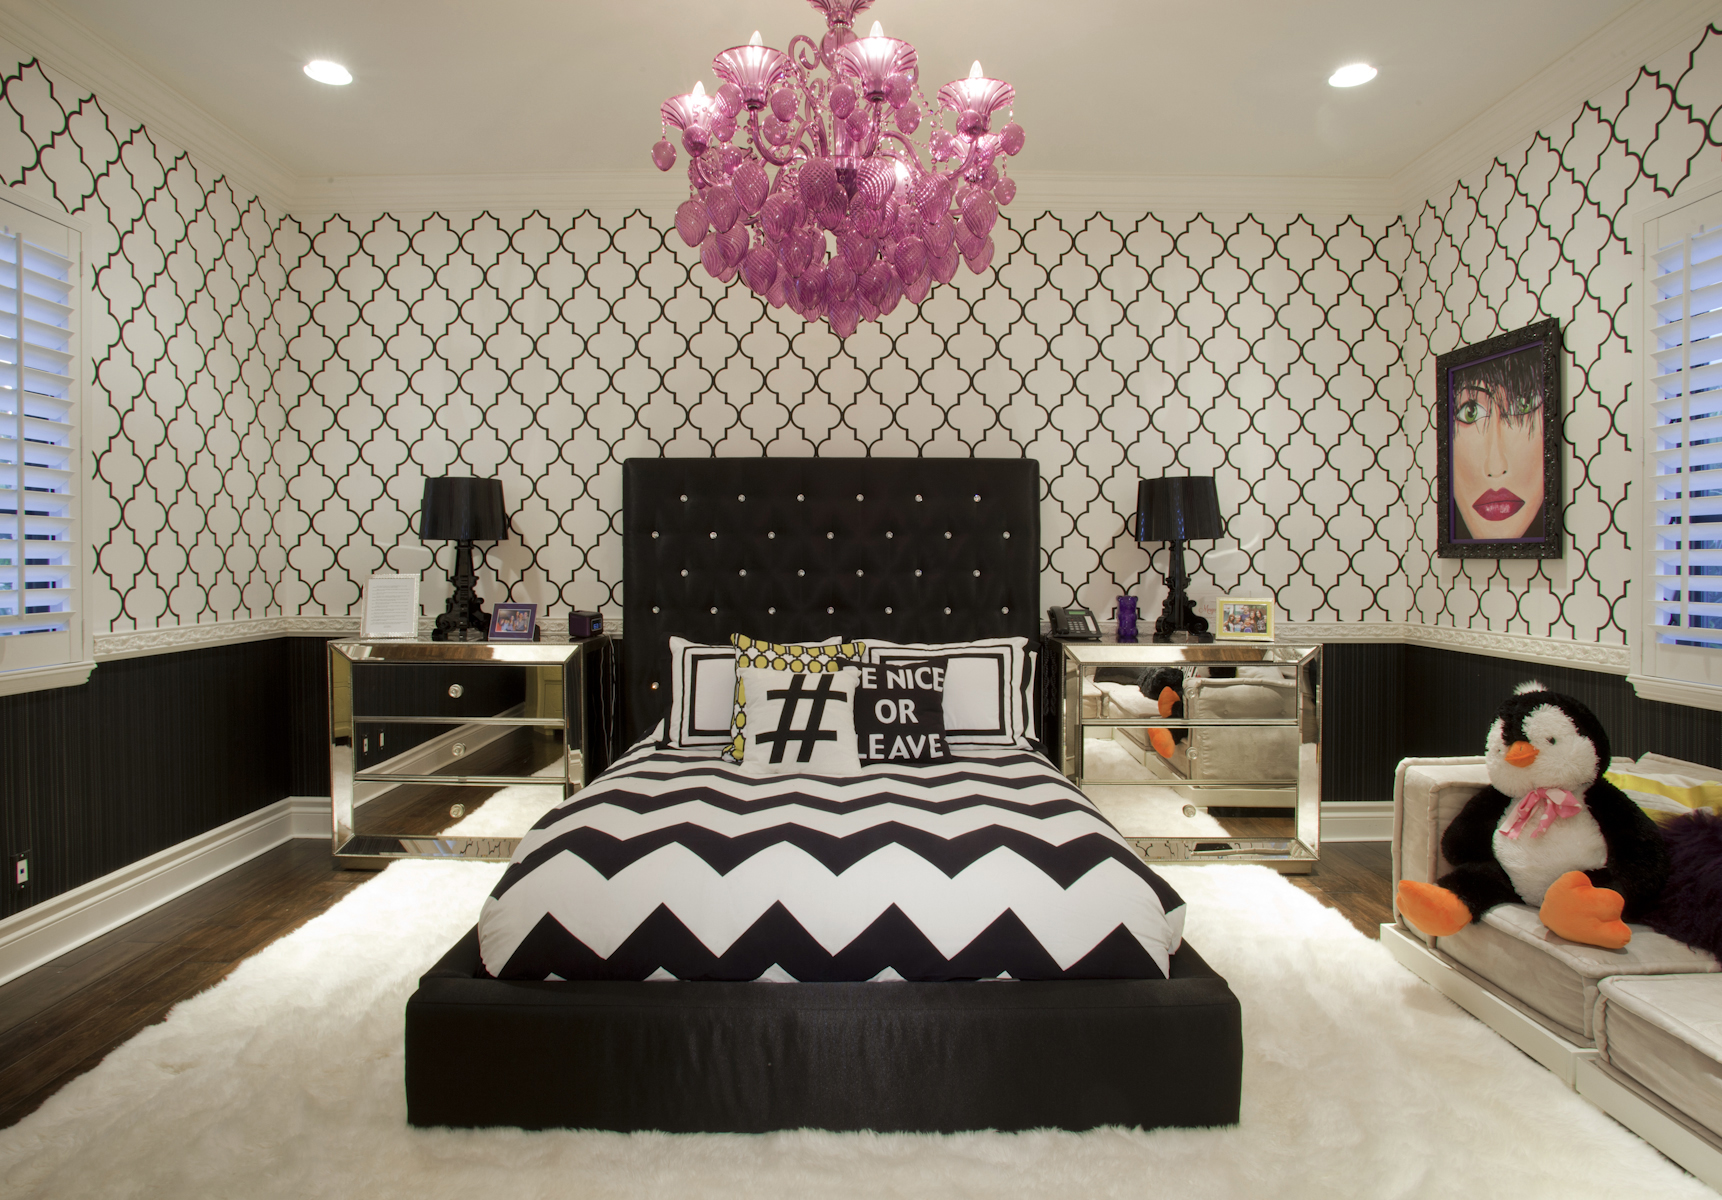 The ultimate bedroom for a teenager